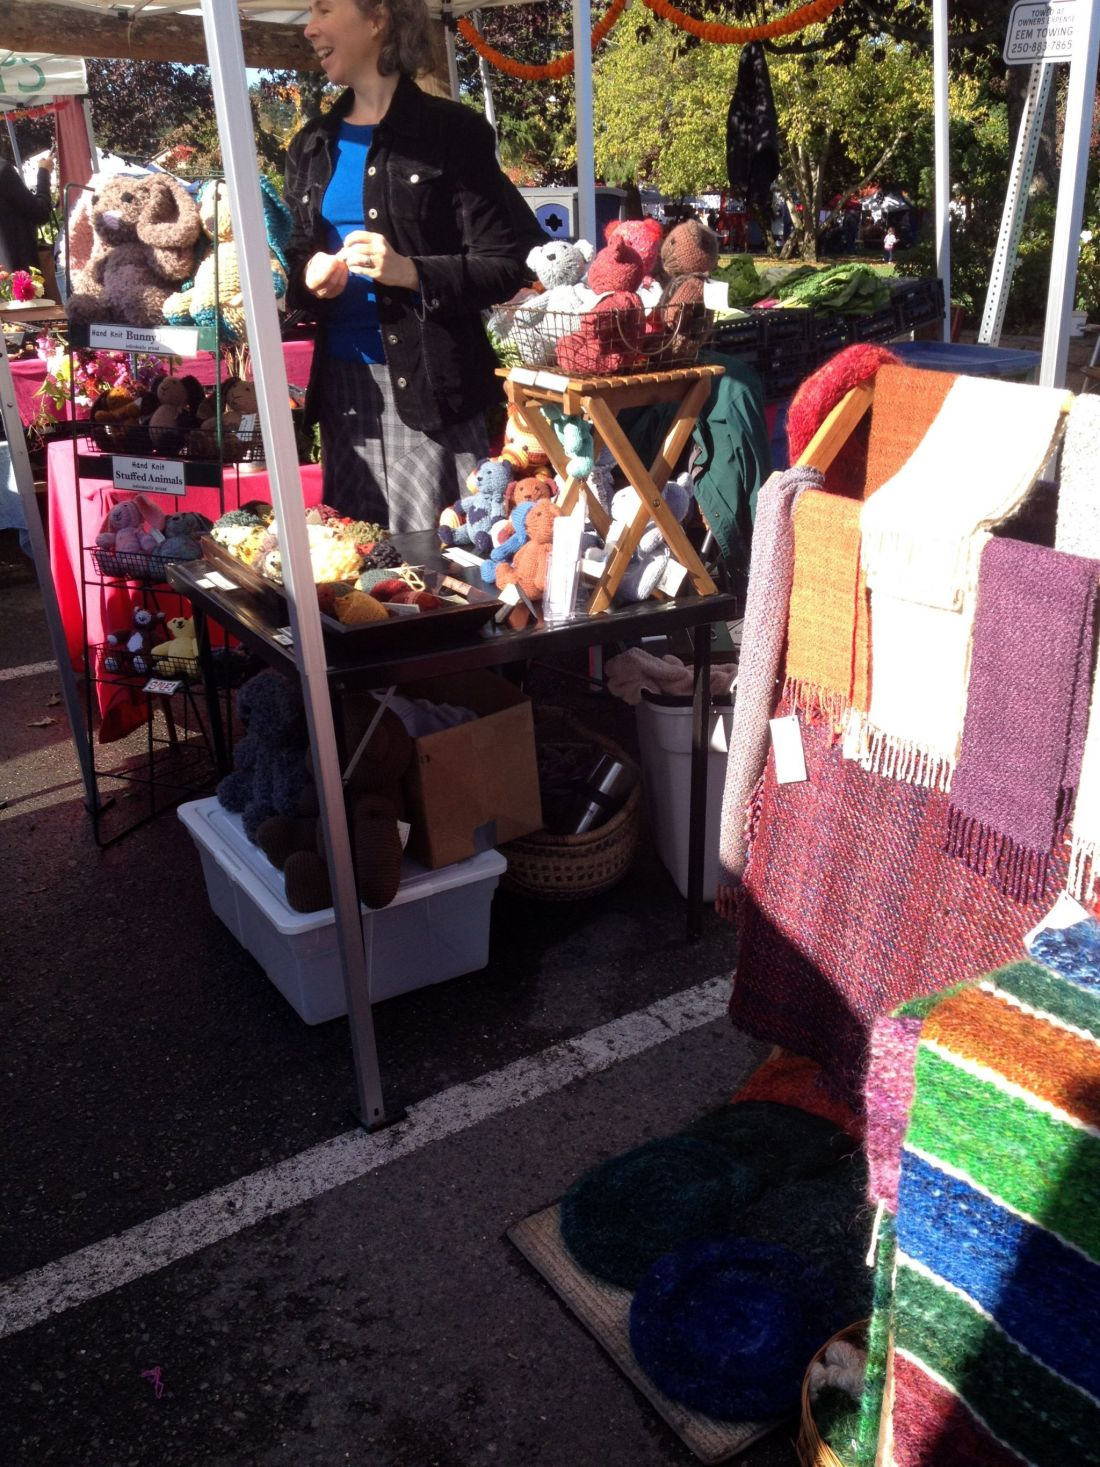 Crafts and arts on sale at the Saturday market on Salt Spring Island